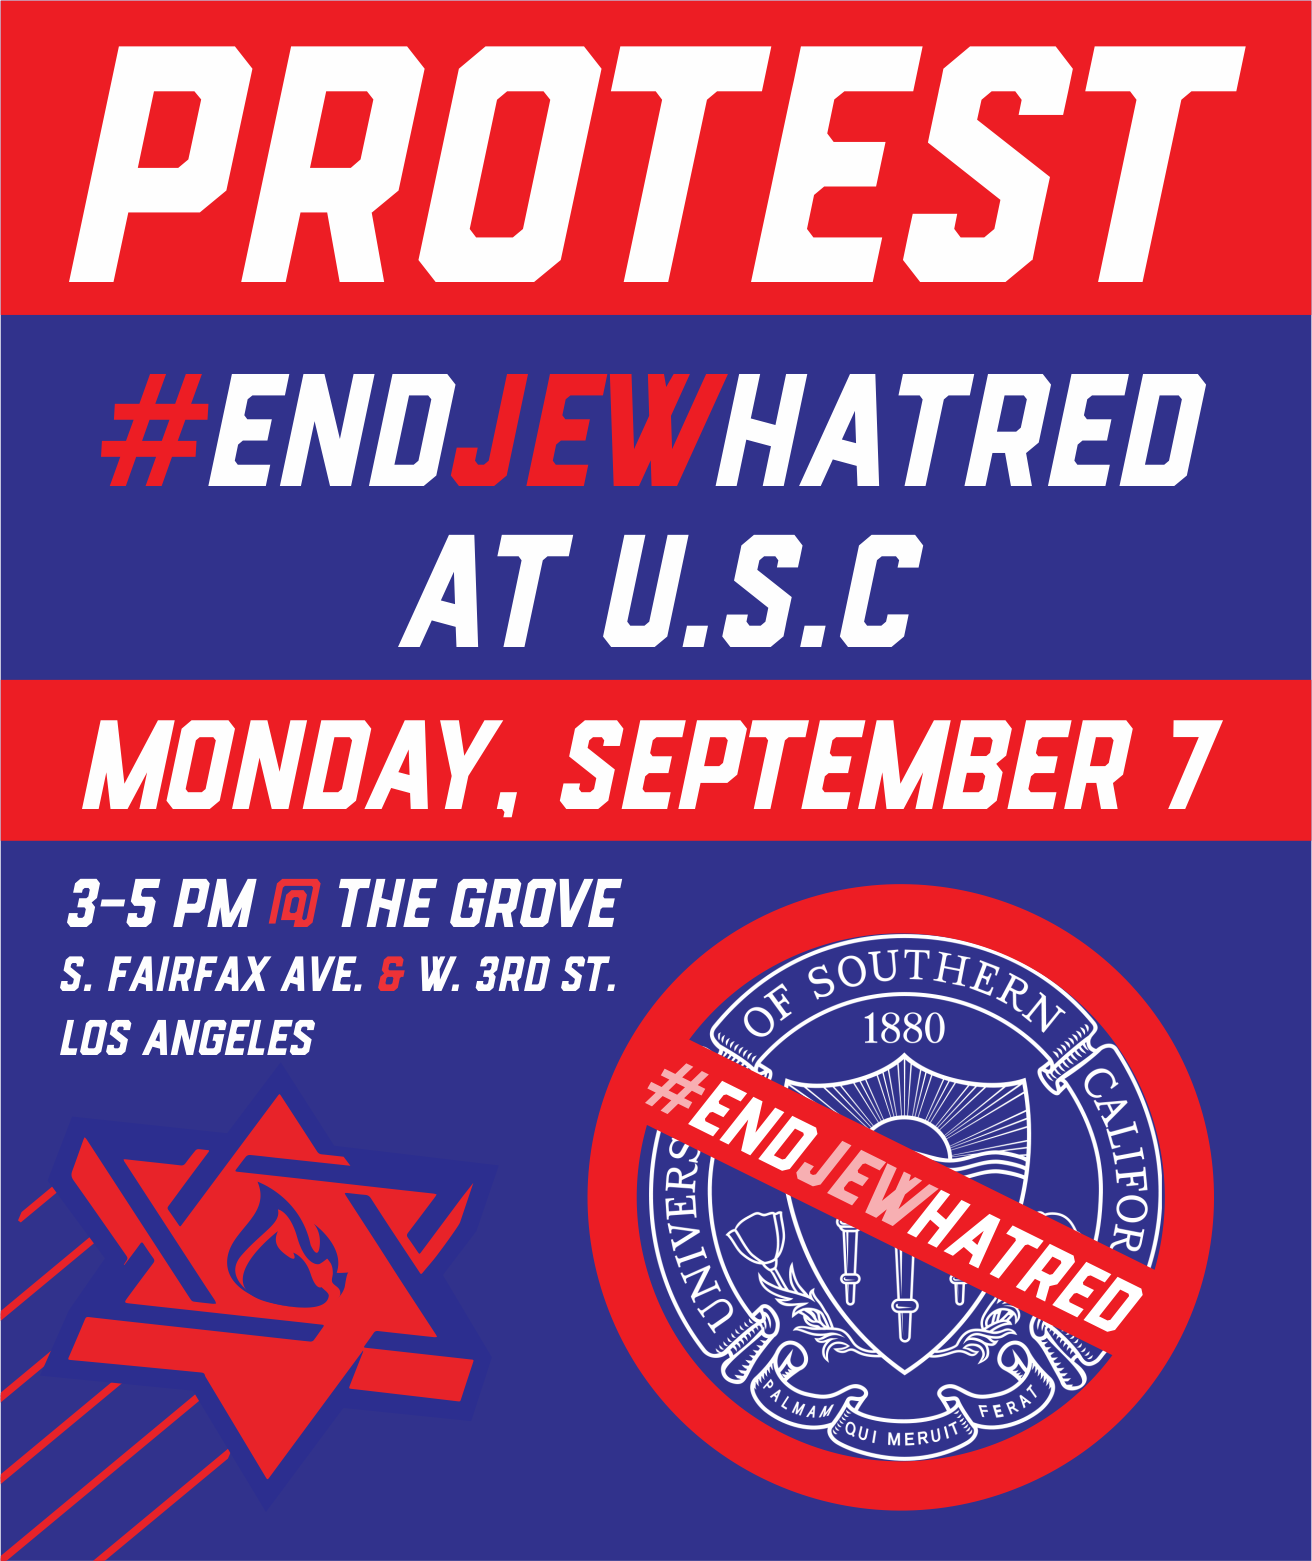 END JEW HATRED AT U.S.C.